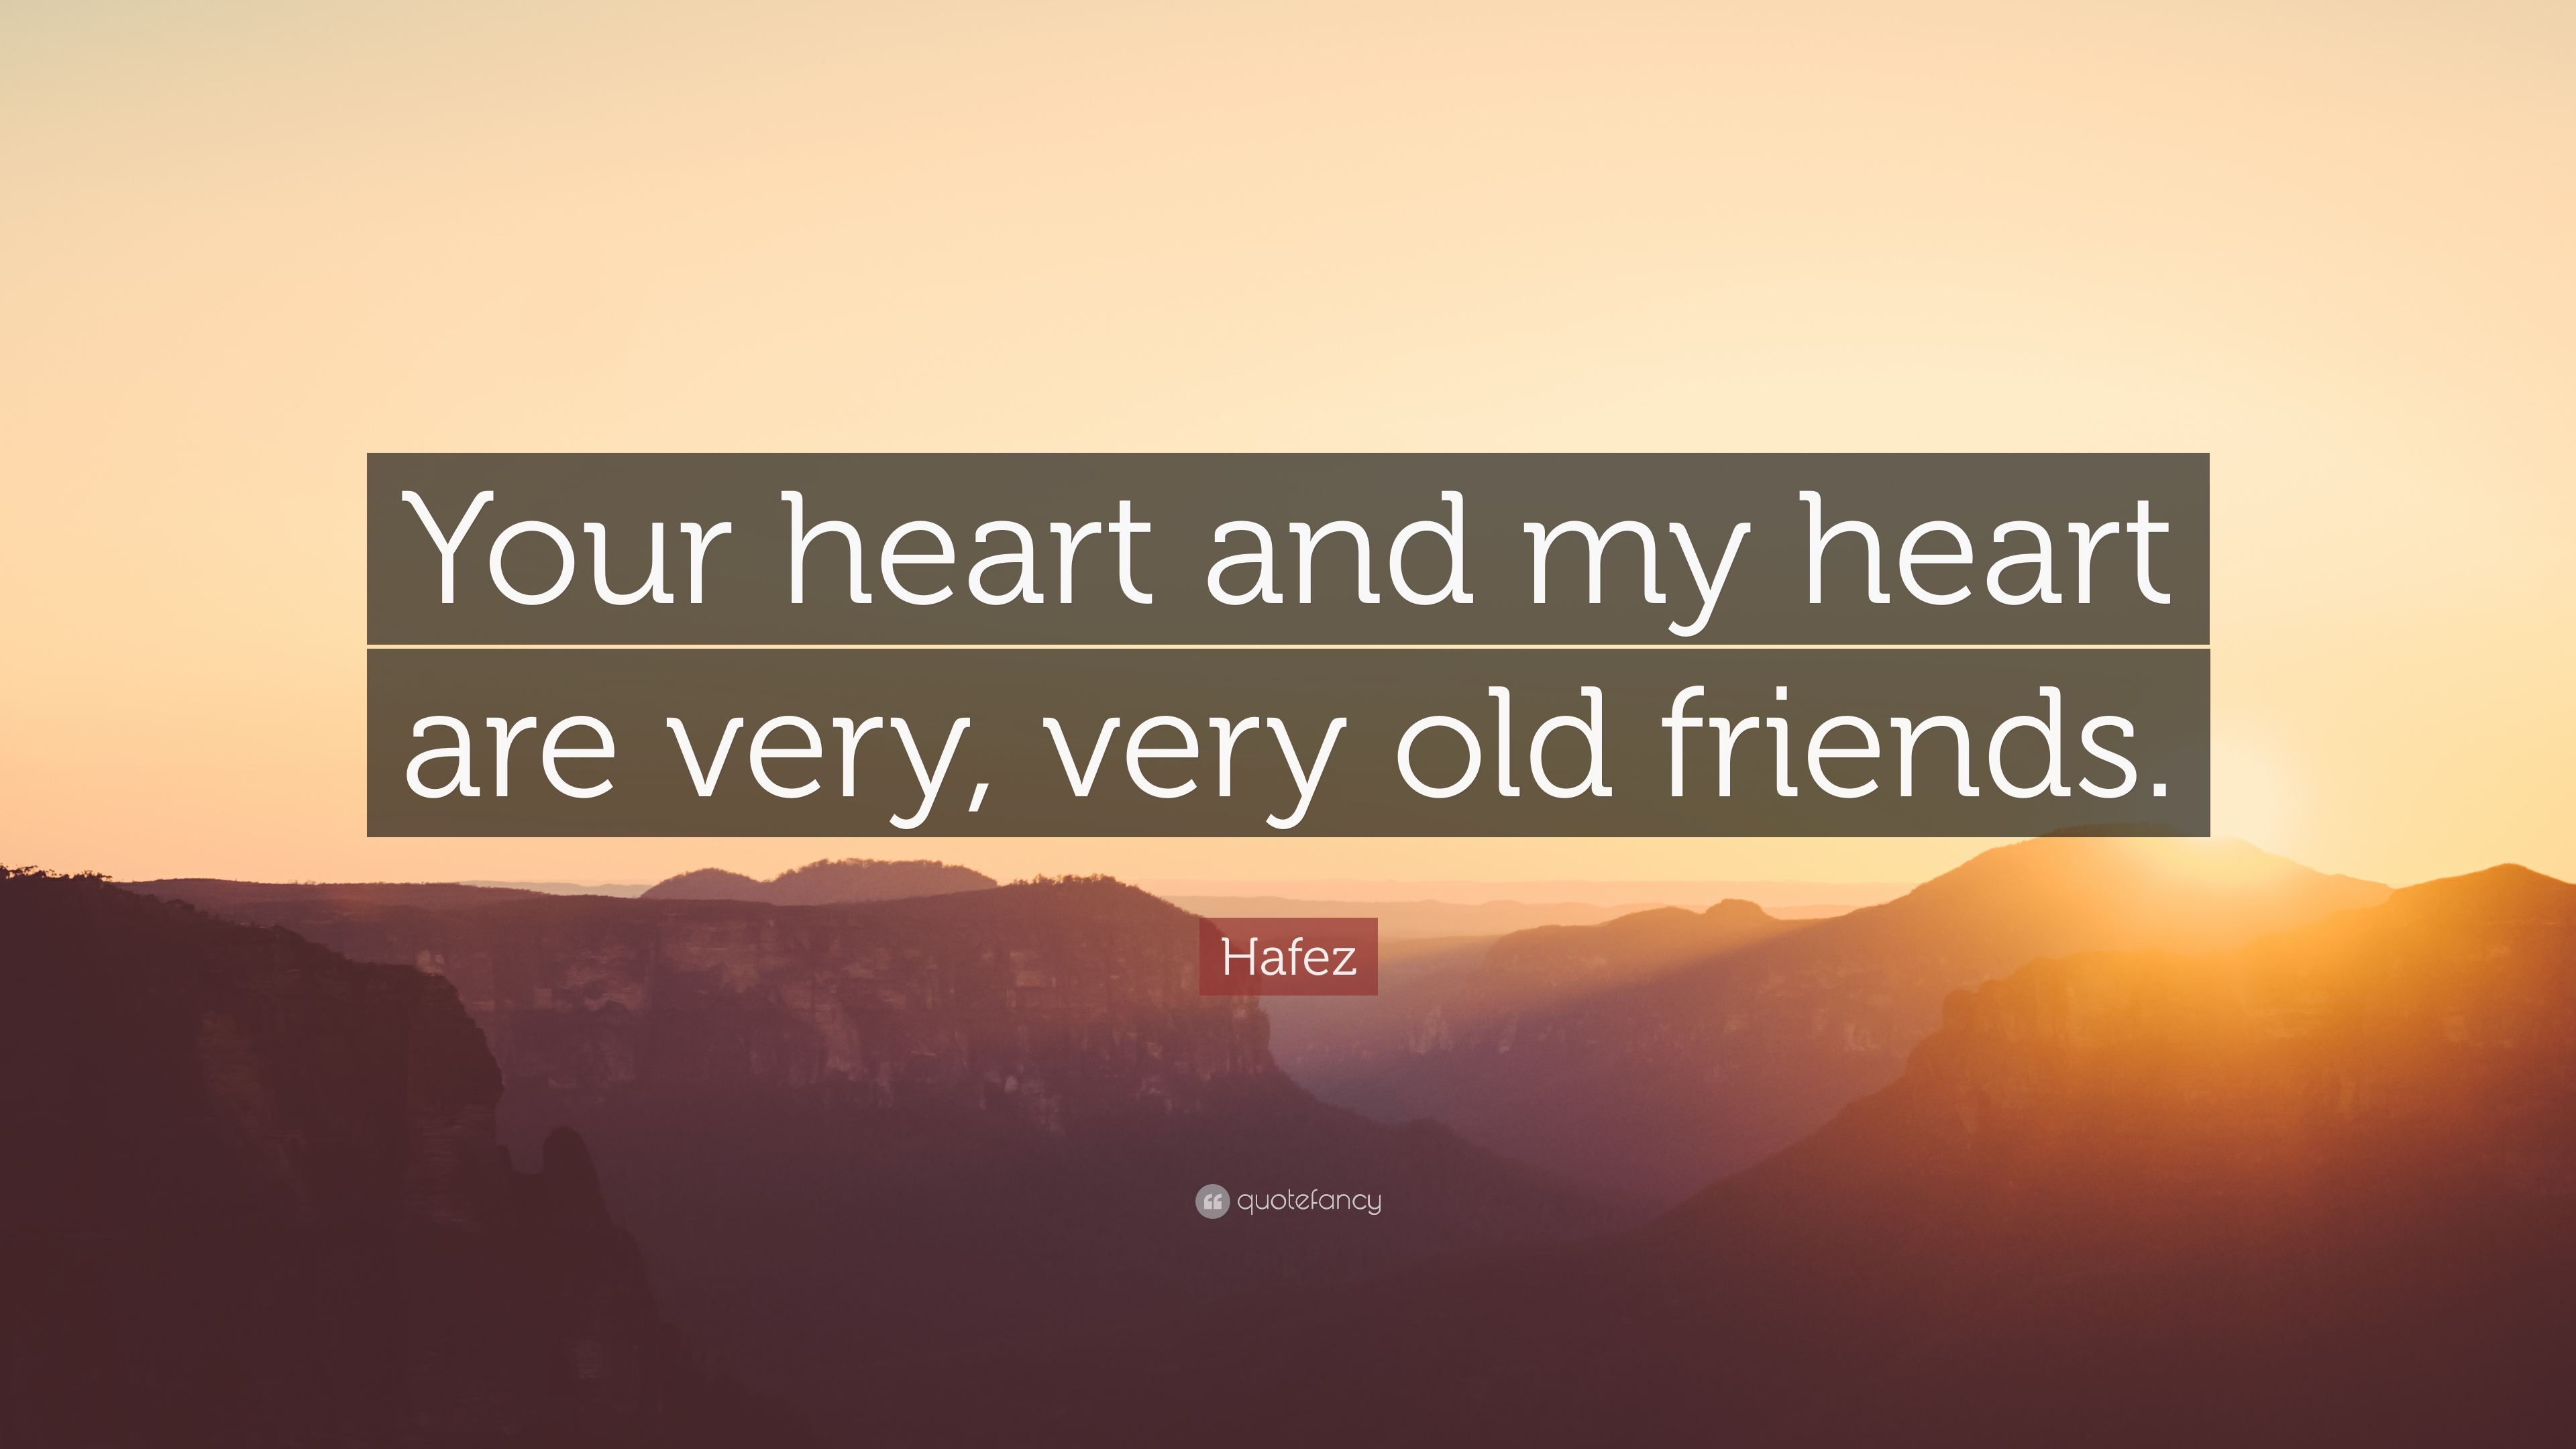 Hafez Quote: Your heart and my heart are very, very old